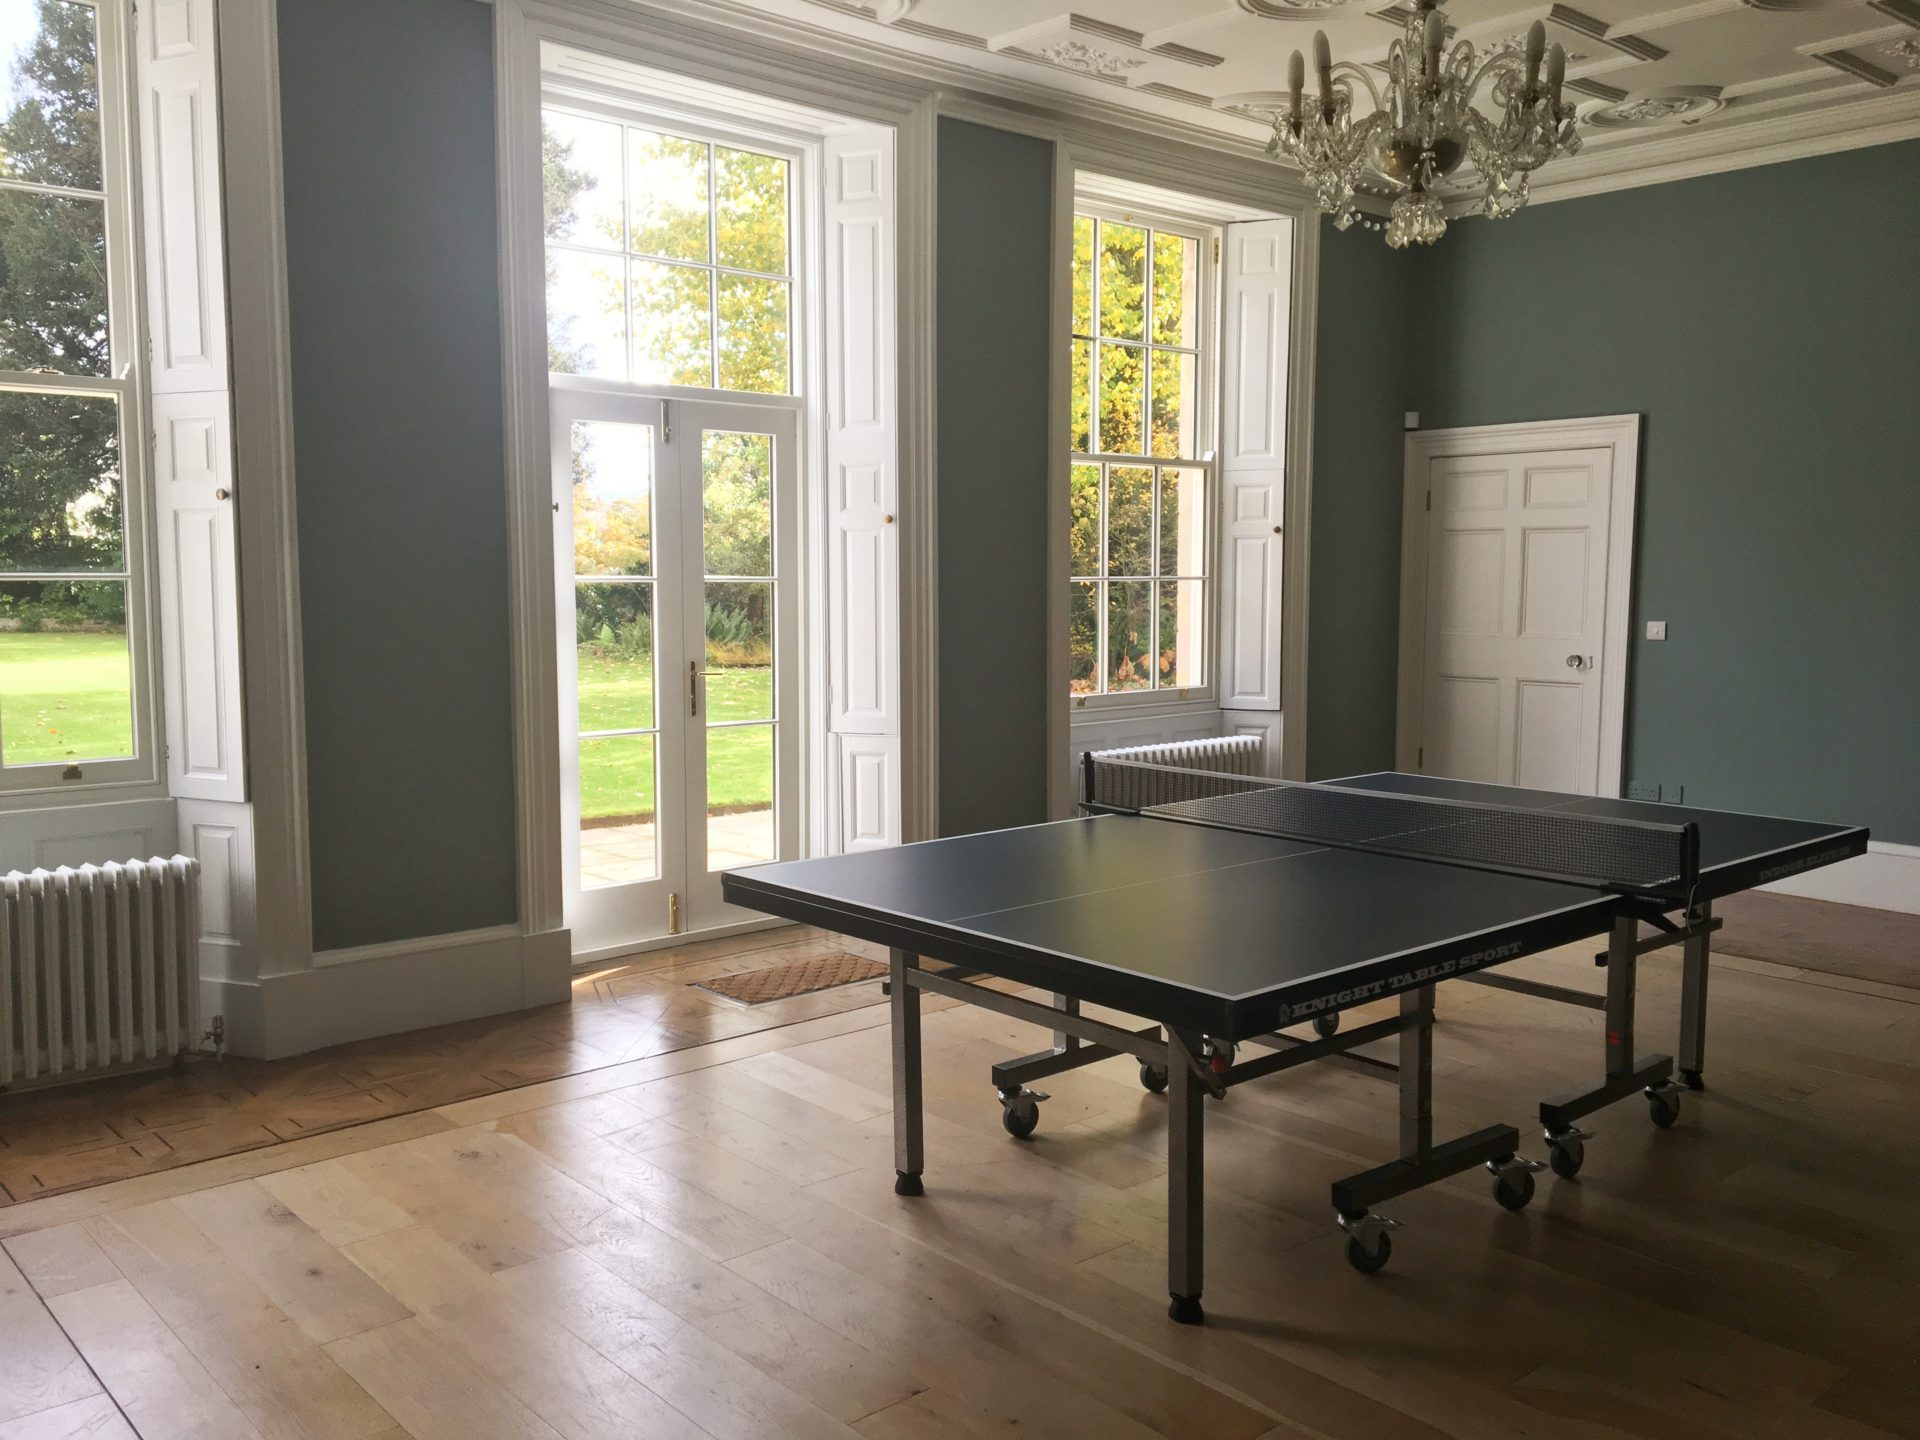 Darley House games room with table tennis table